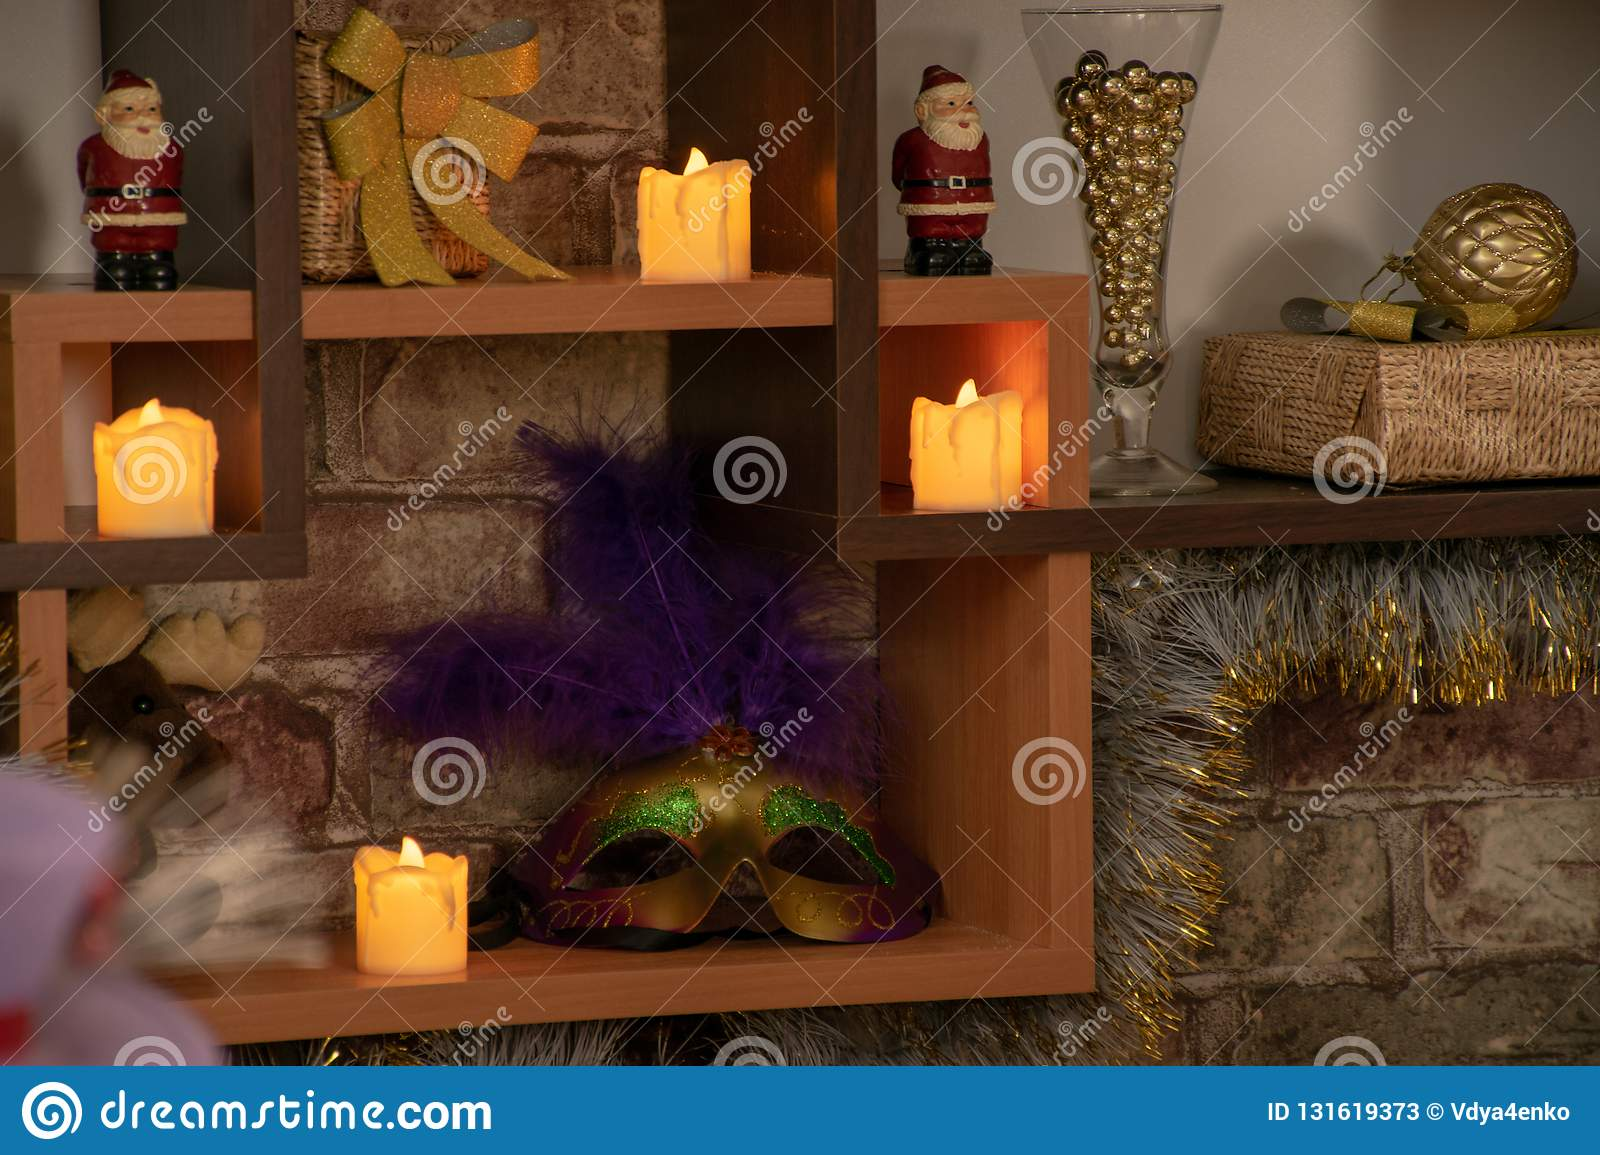 Tree shelves with Christmas decorations